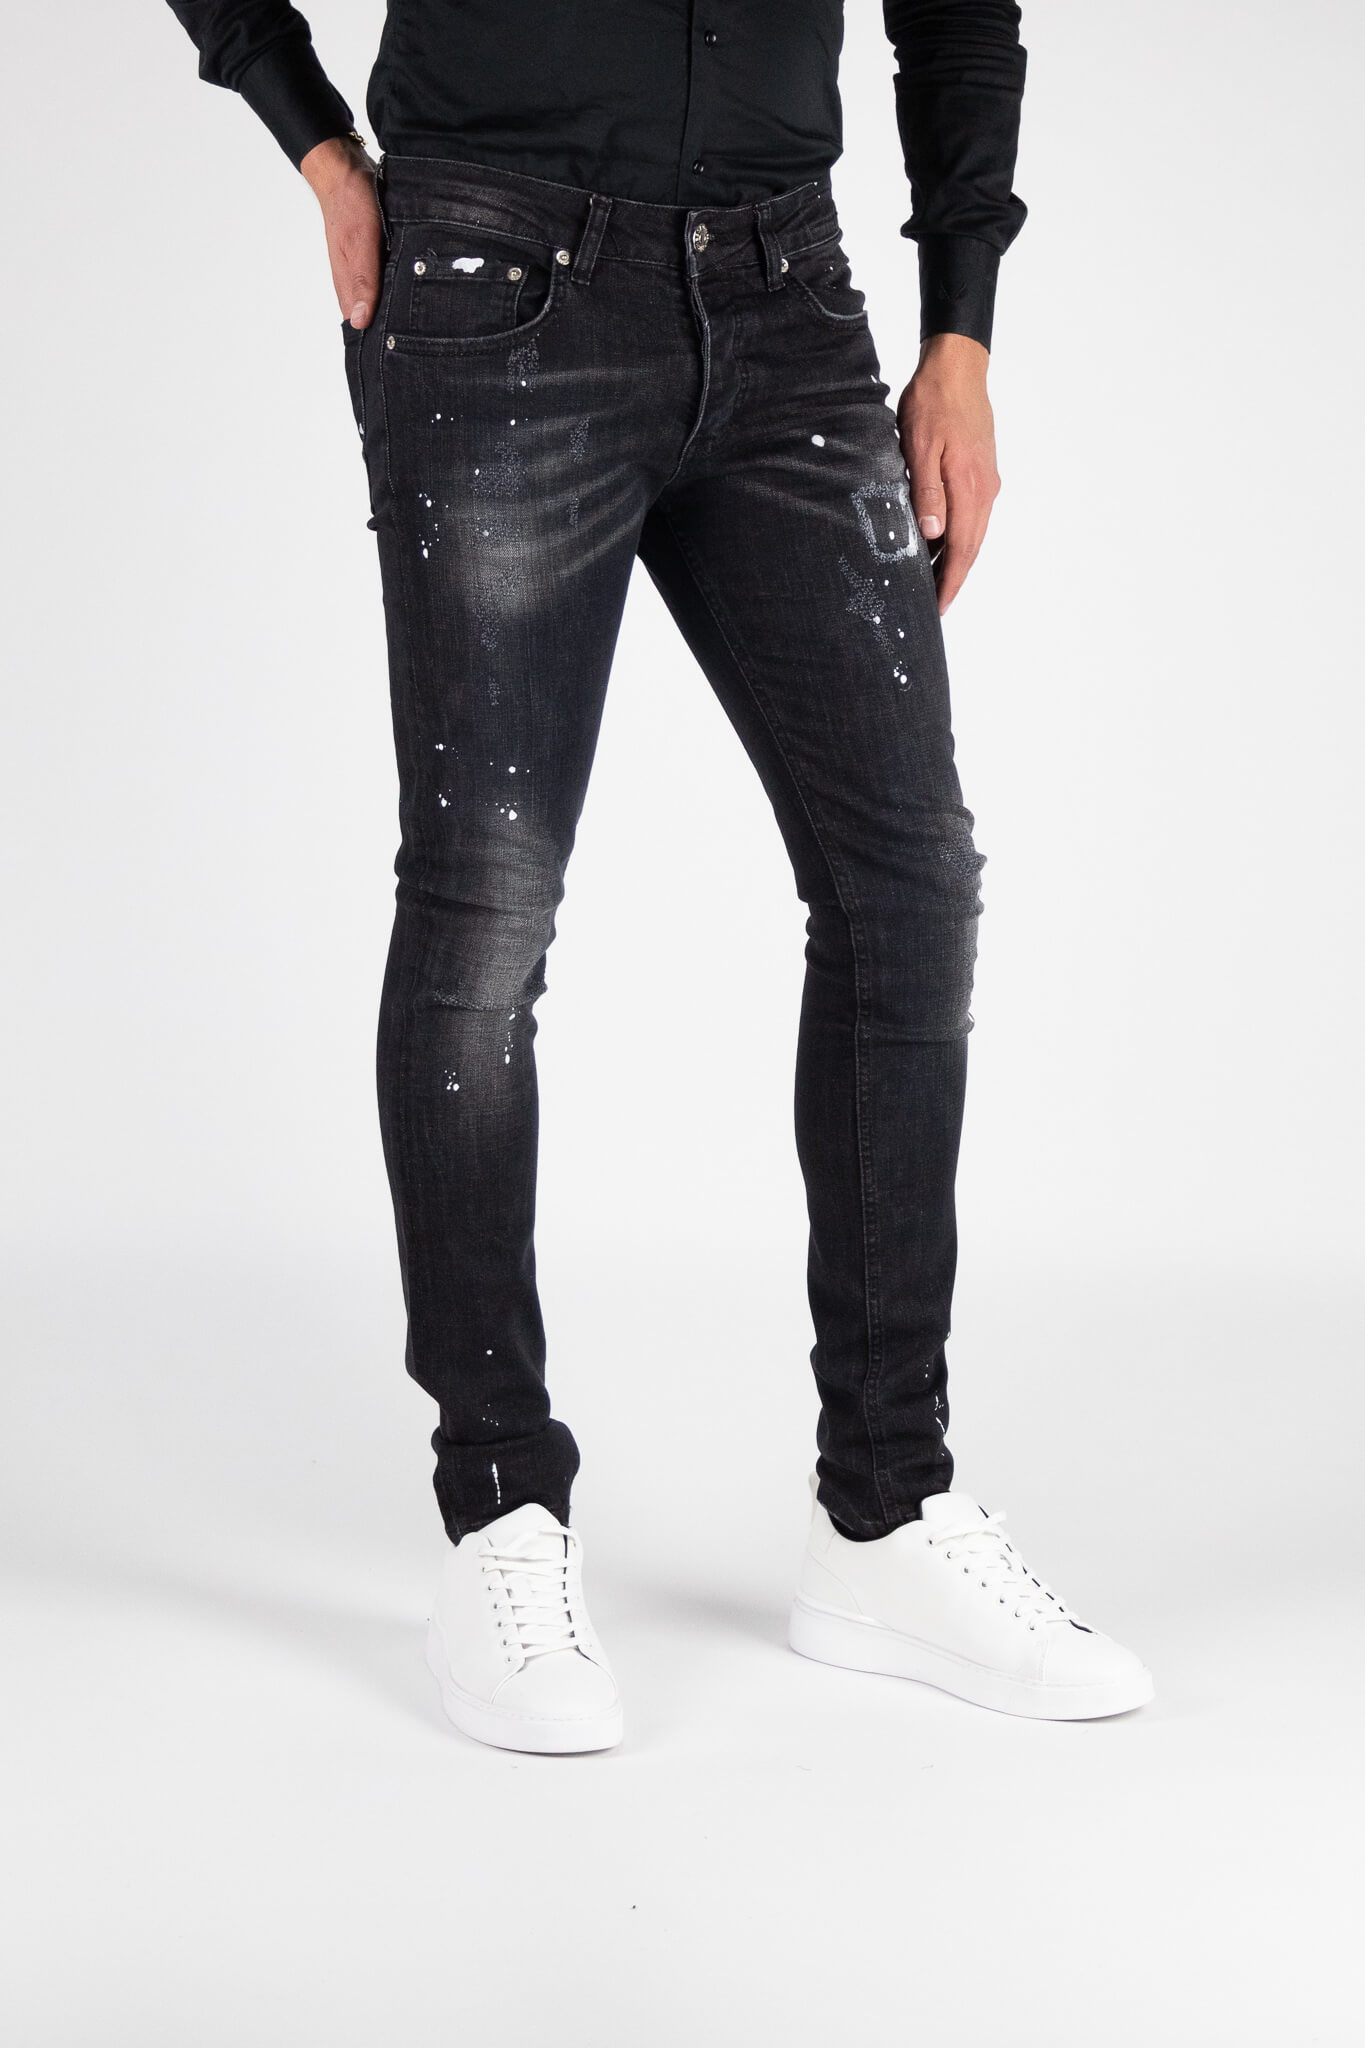 Chaves Black Jeans 5